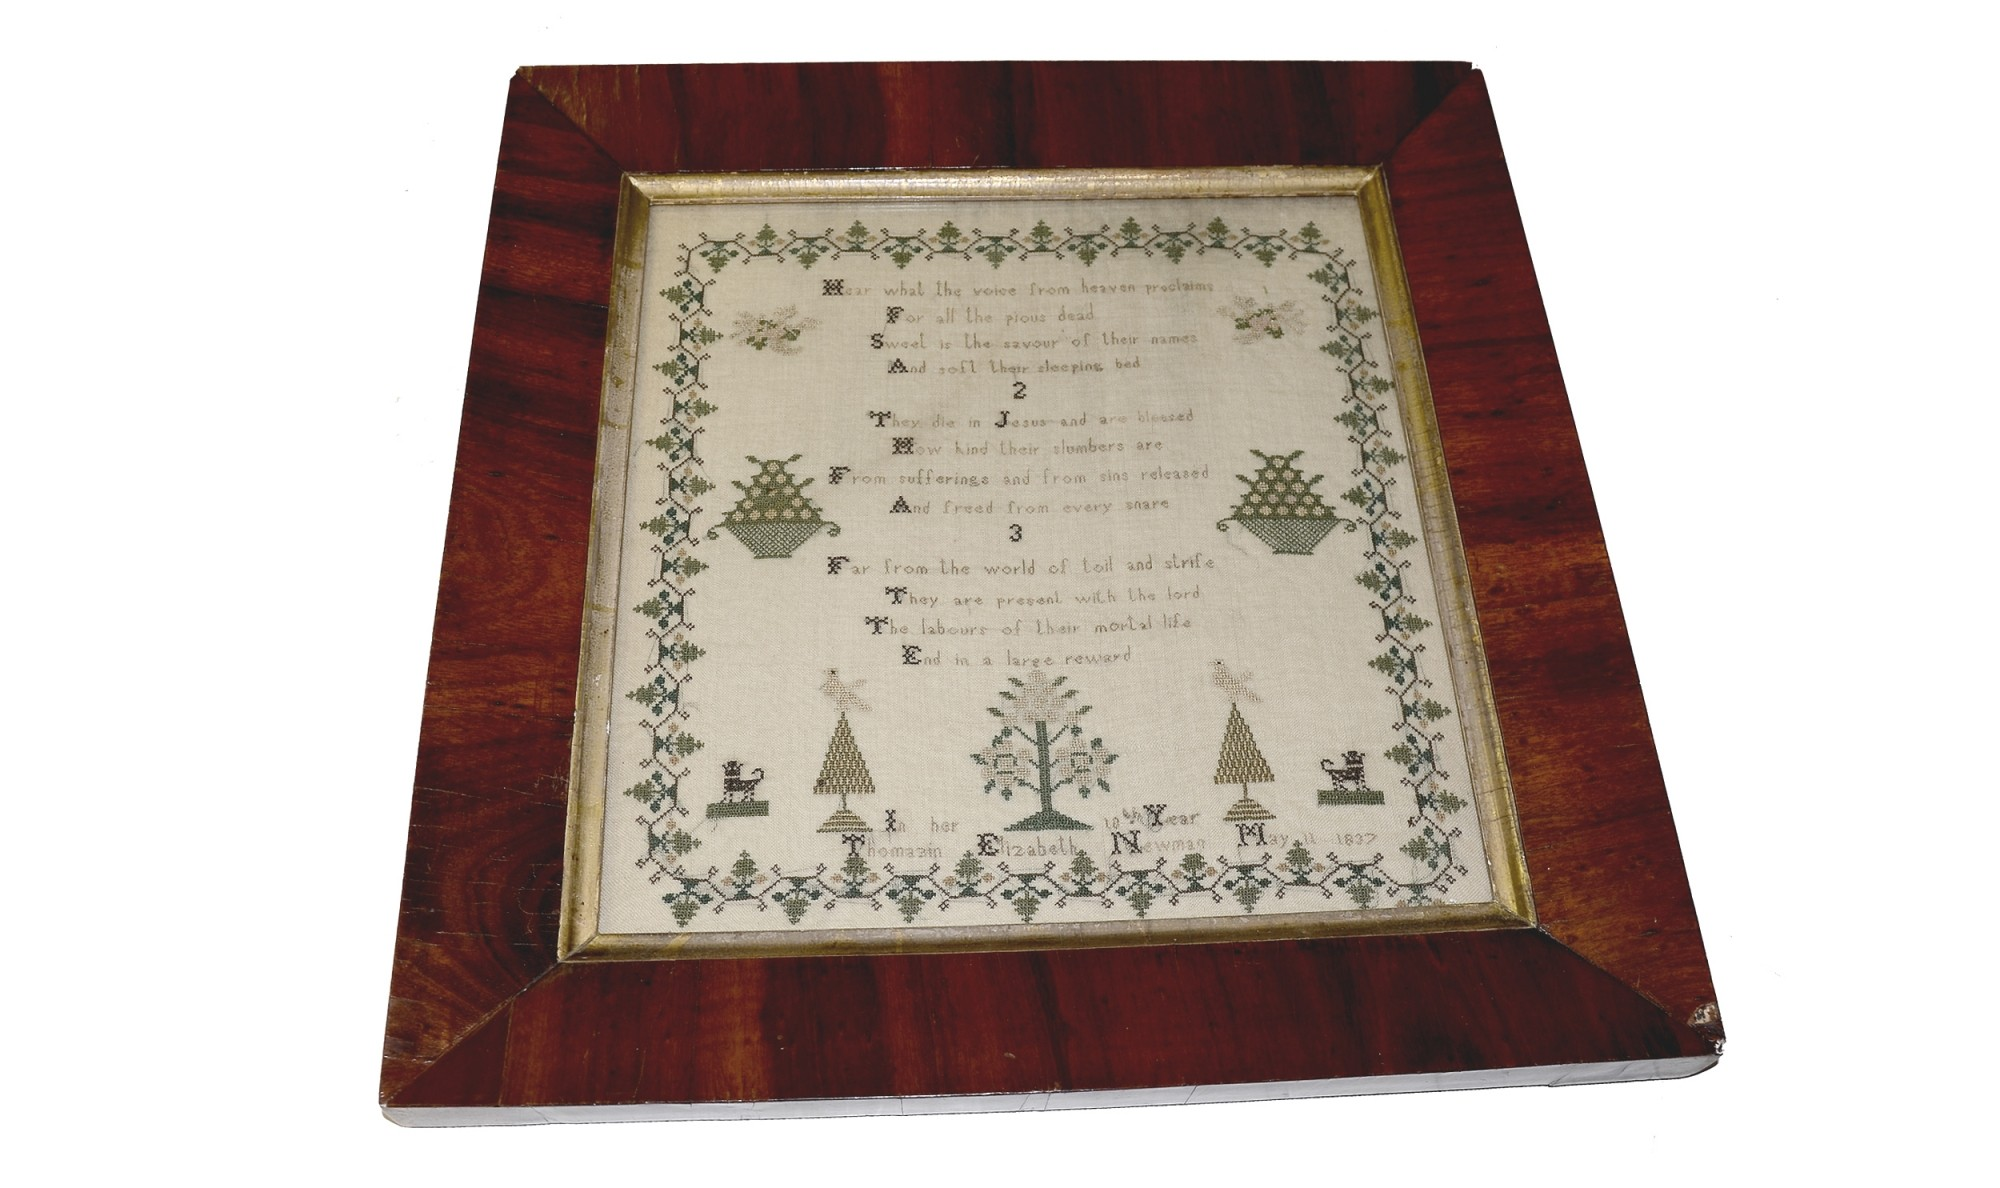 FRAMED CROSS STITCH SAMPLER, DATED MAY 11, 1837 — Horse Soldier